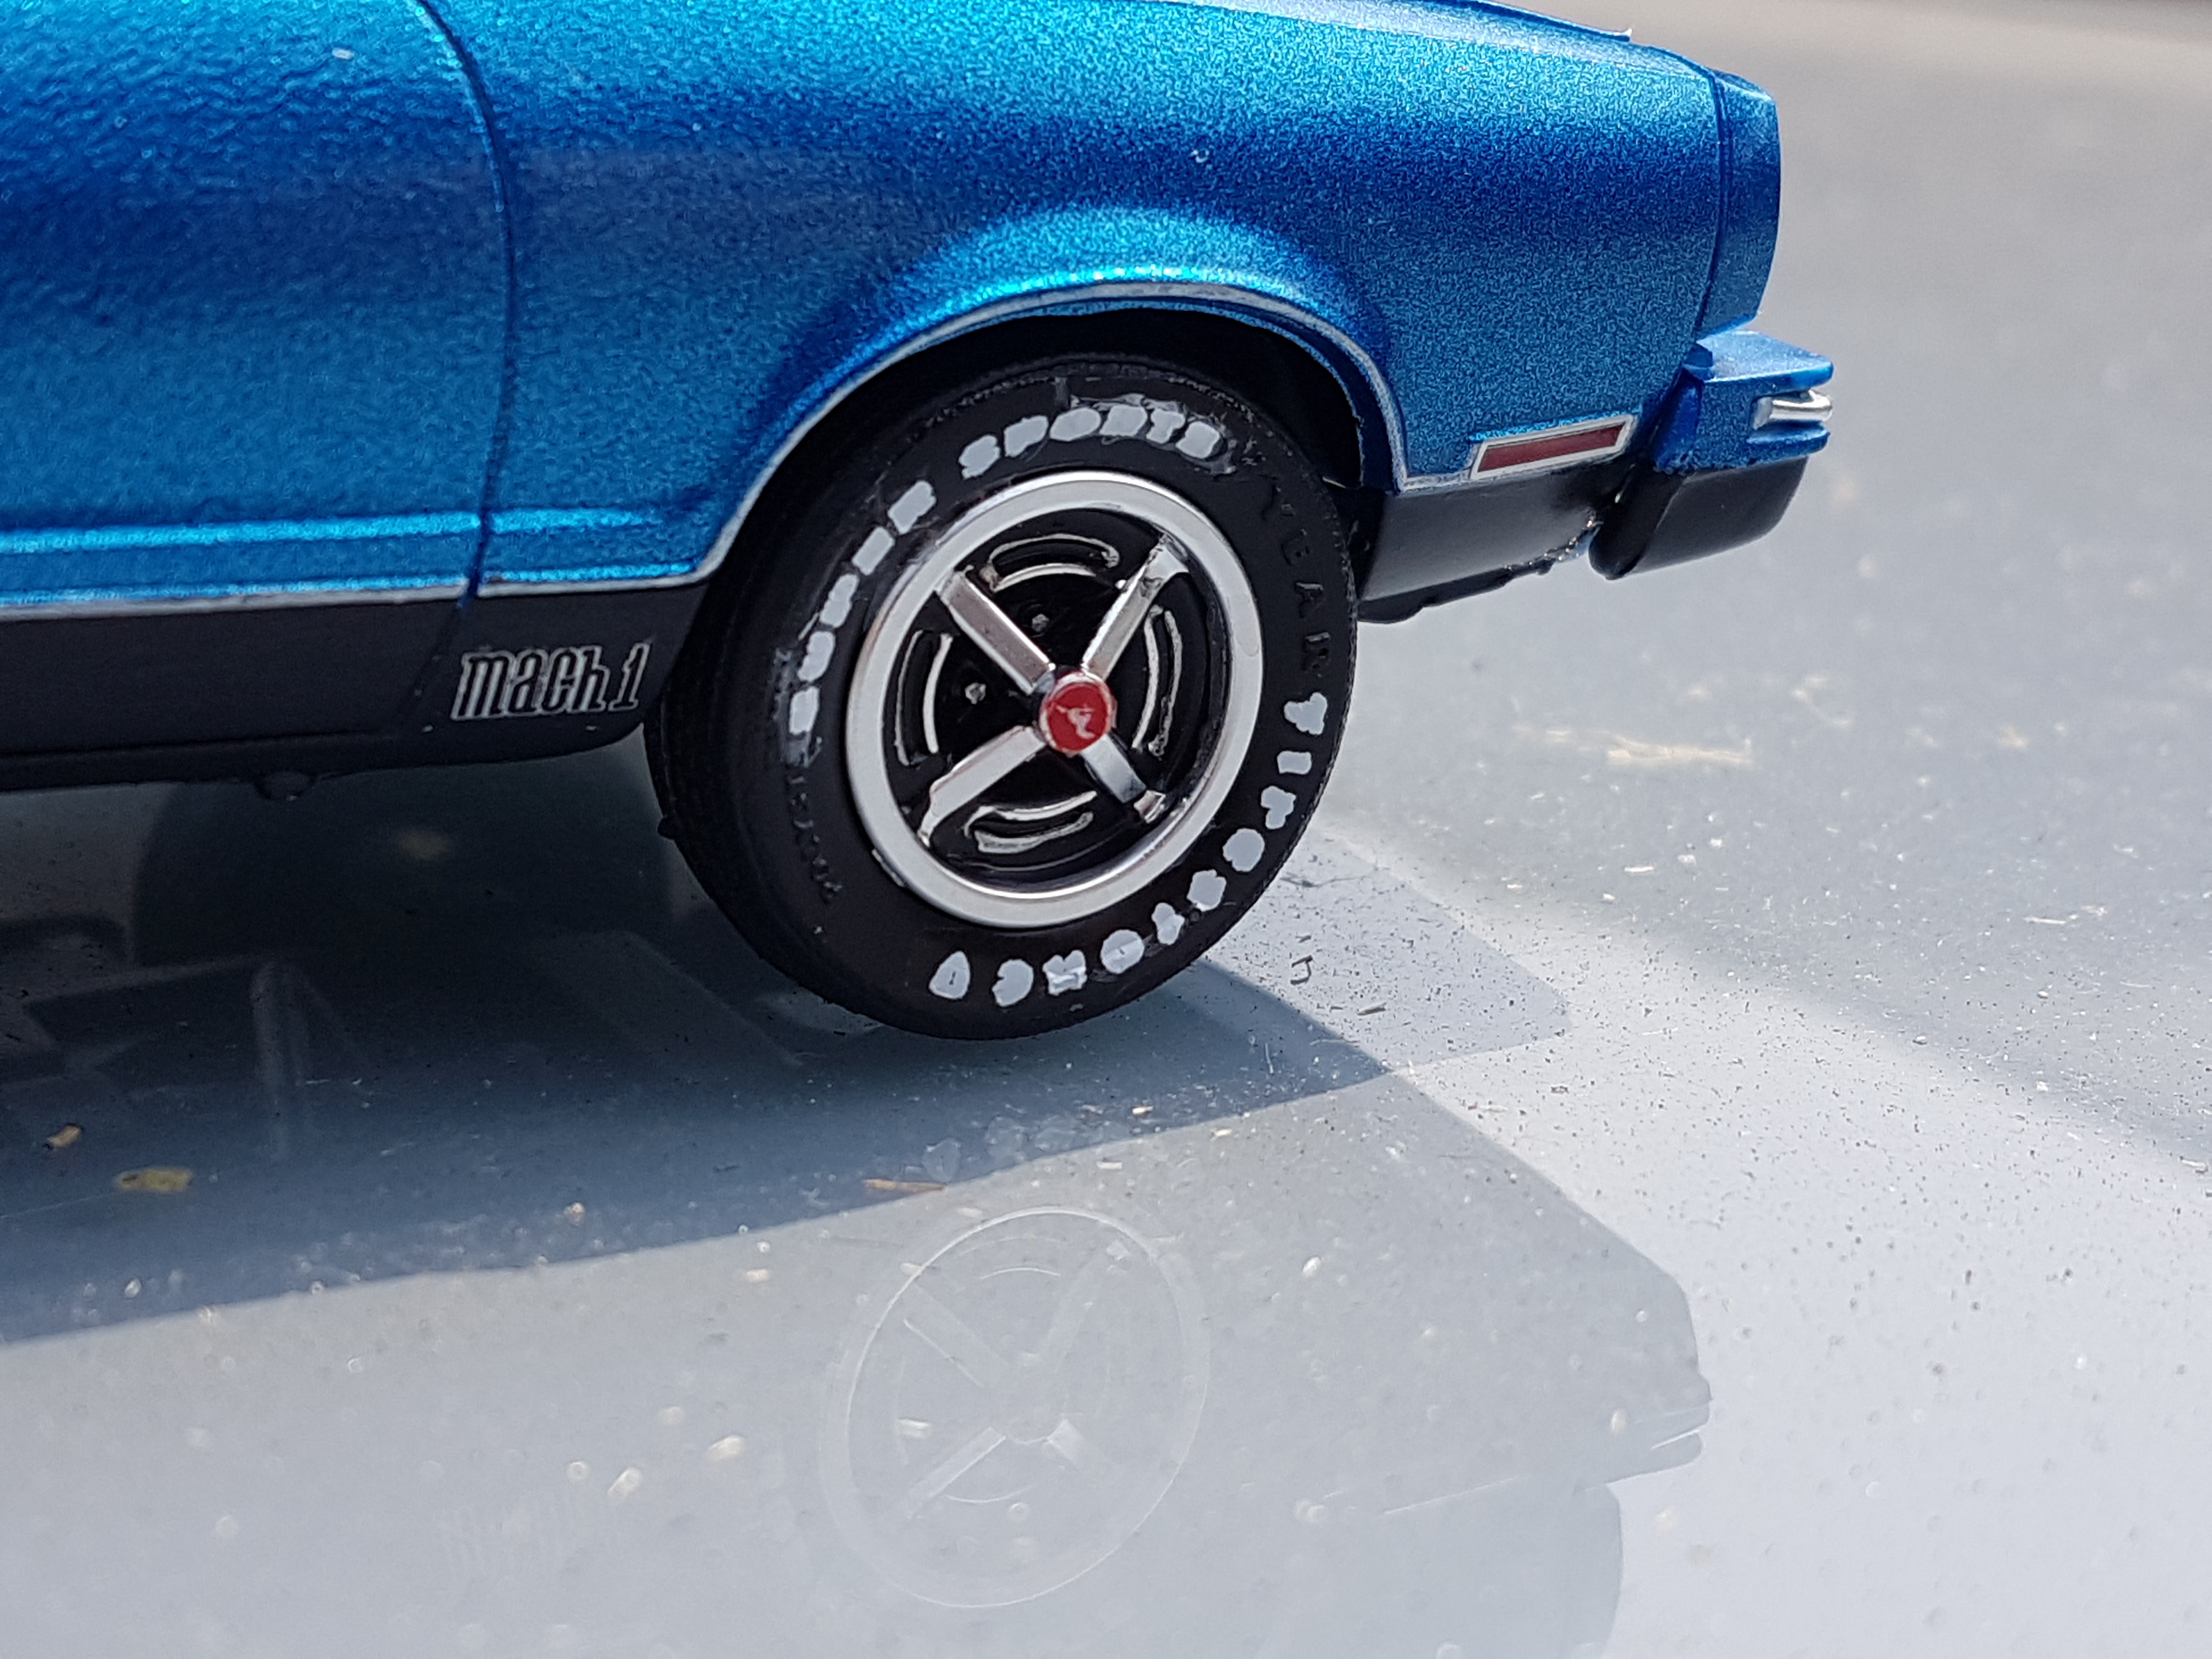 1977 Ford Mustang II Mach 1 – AMT